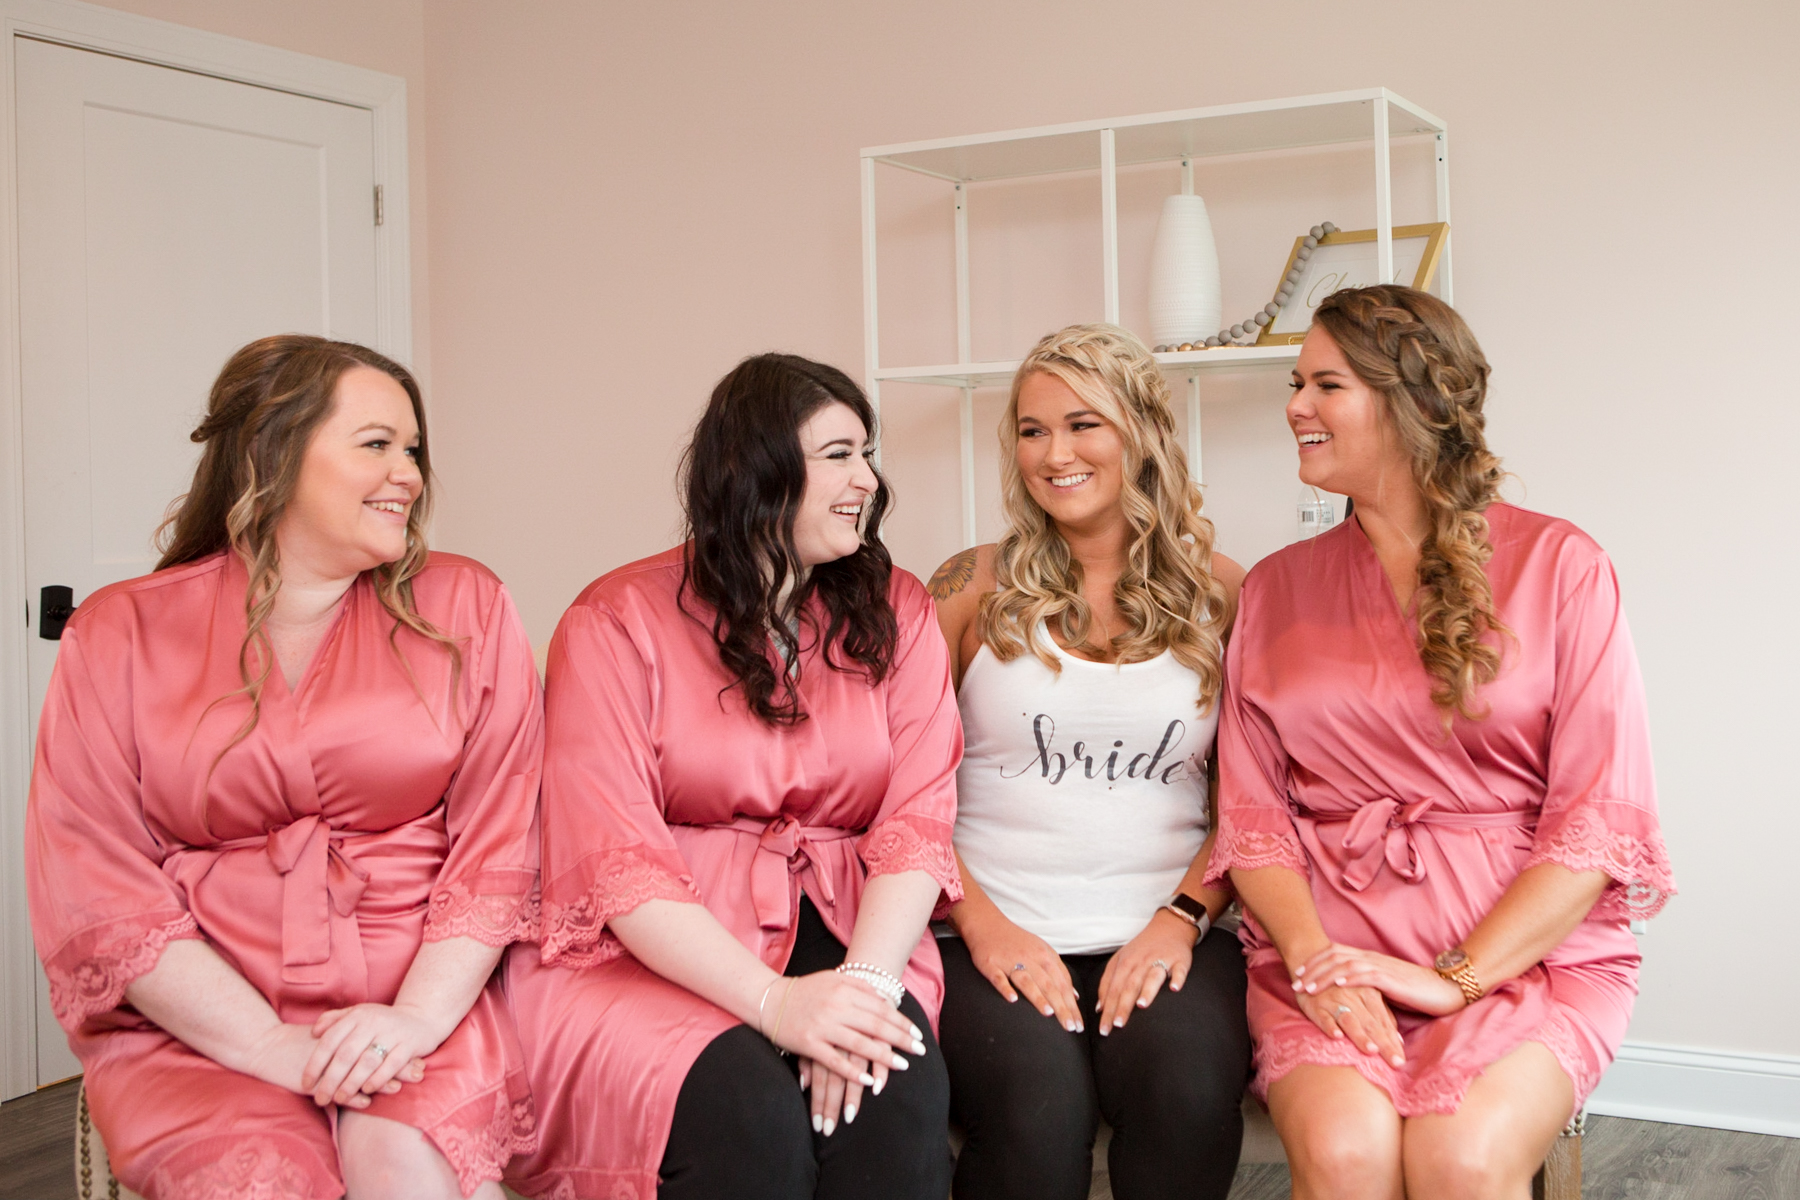 bridesmaids-wedding-day.jpg